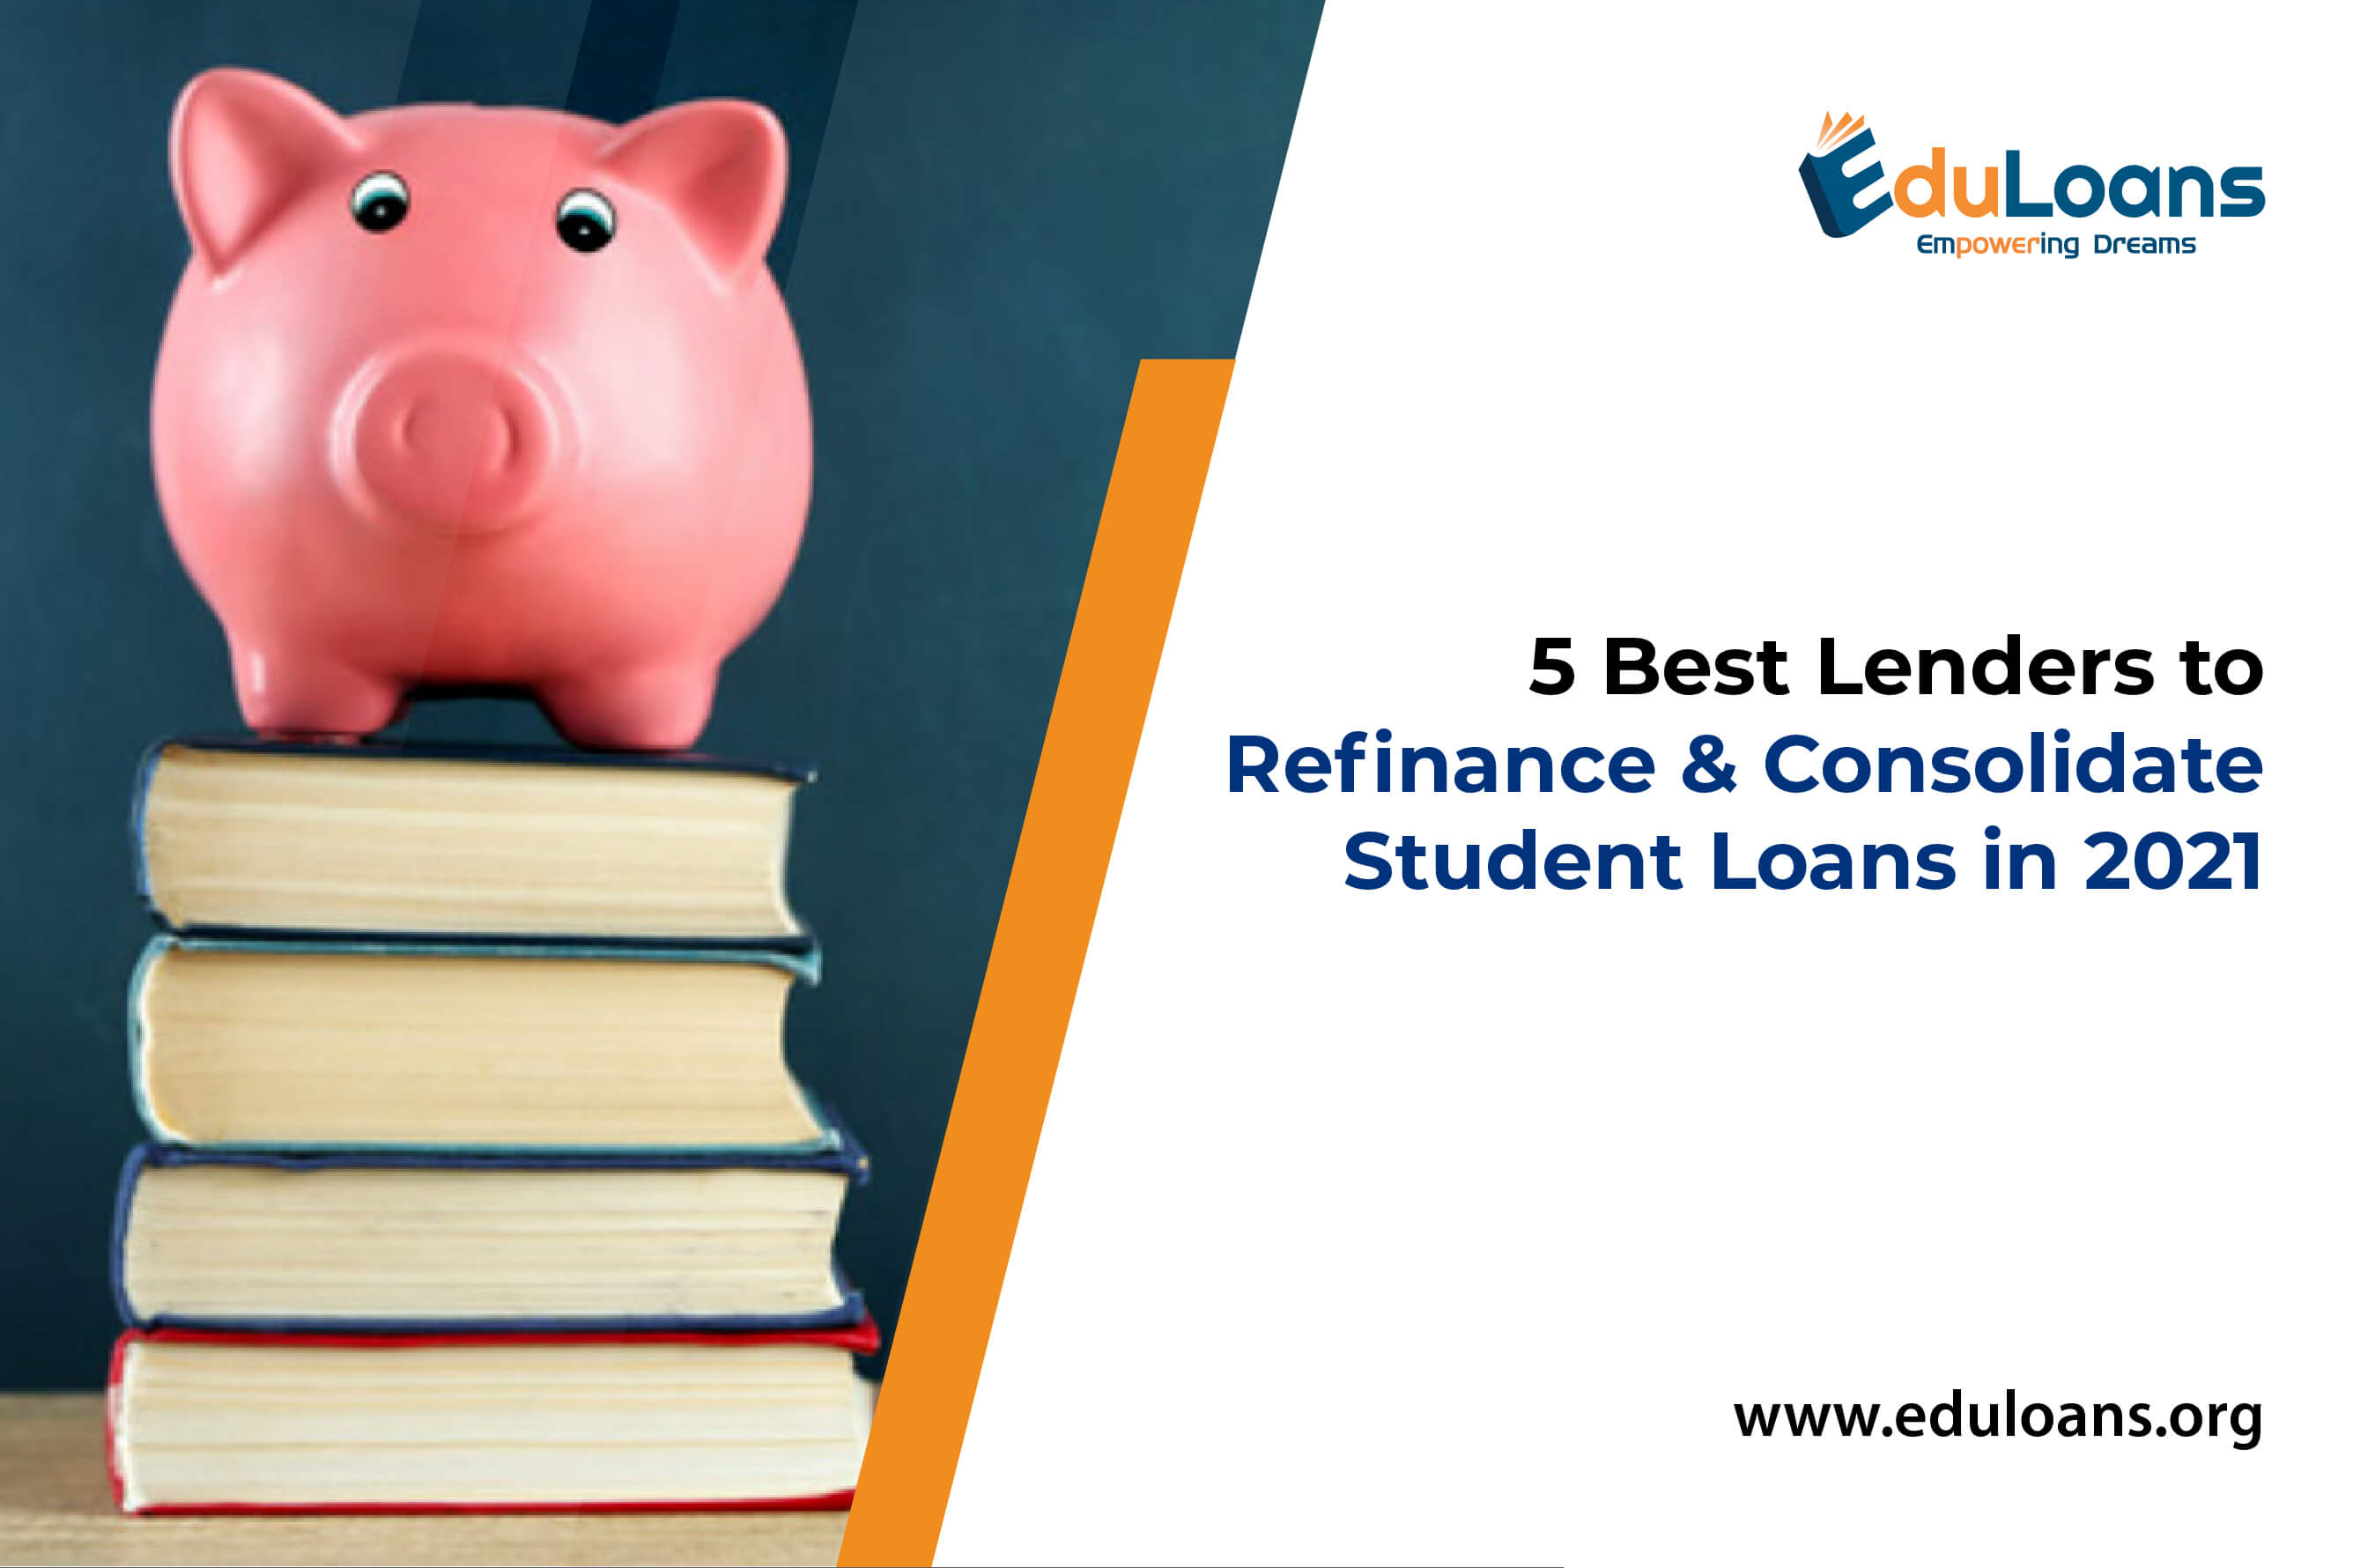 5 Best Lenders to Refinance and Consolidate Student Loans in 2021